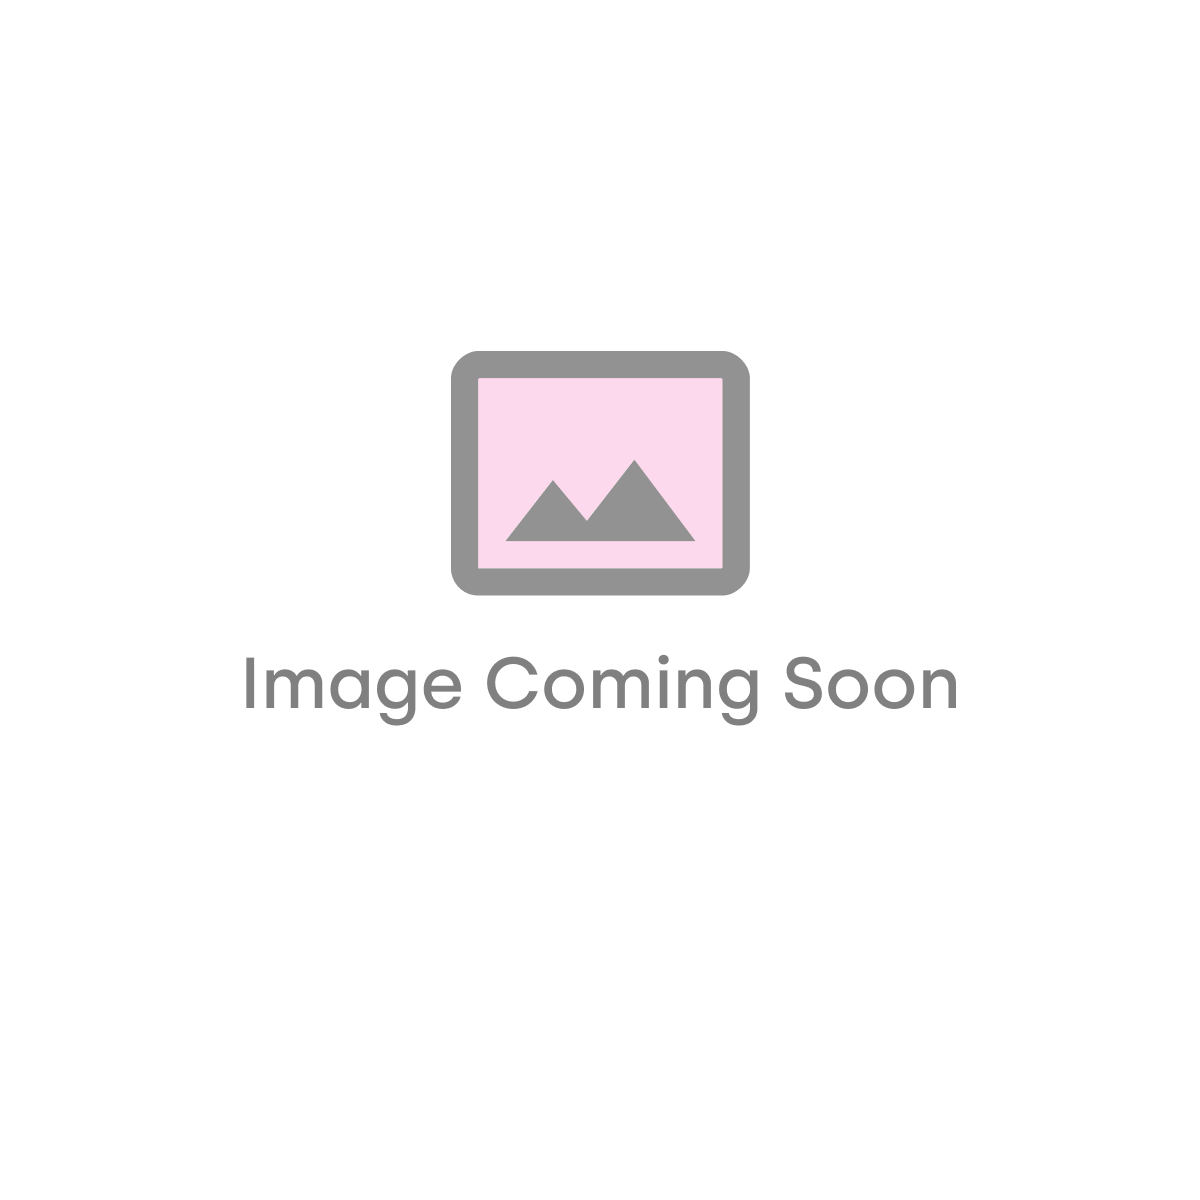 Bathe Easy Style Easy Access 1800mm Shower Bath, Screen & Panels  - Right Hand (14955)